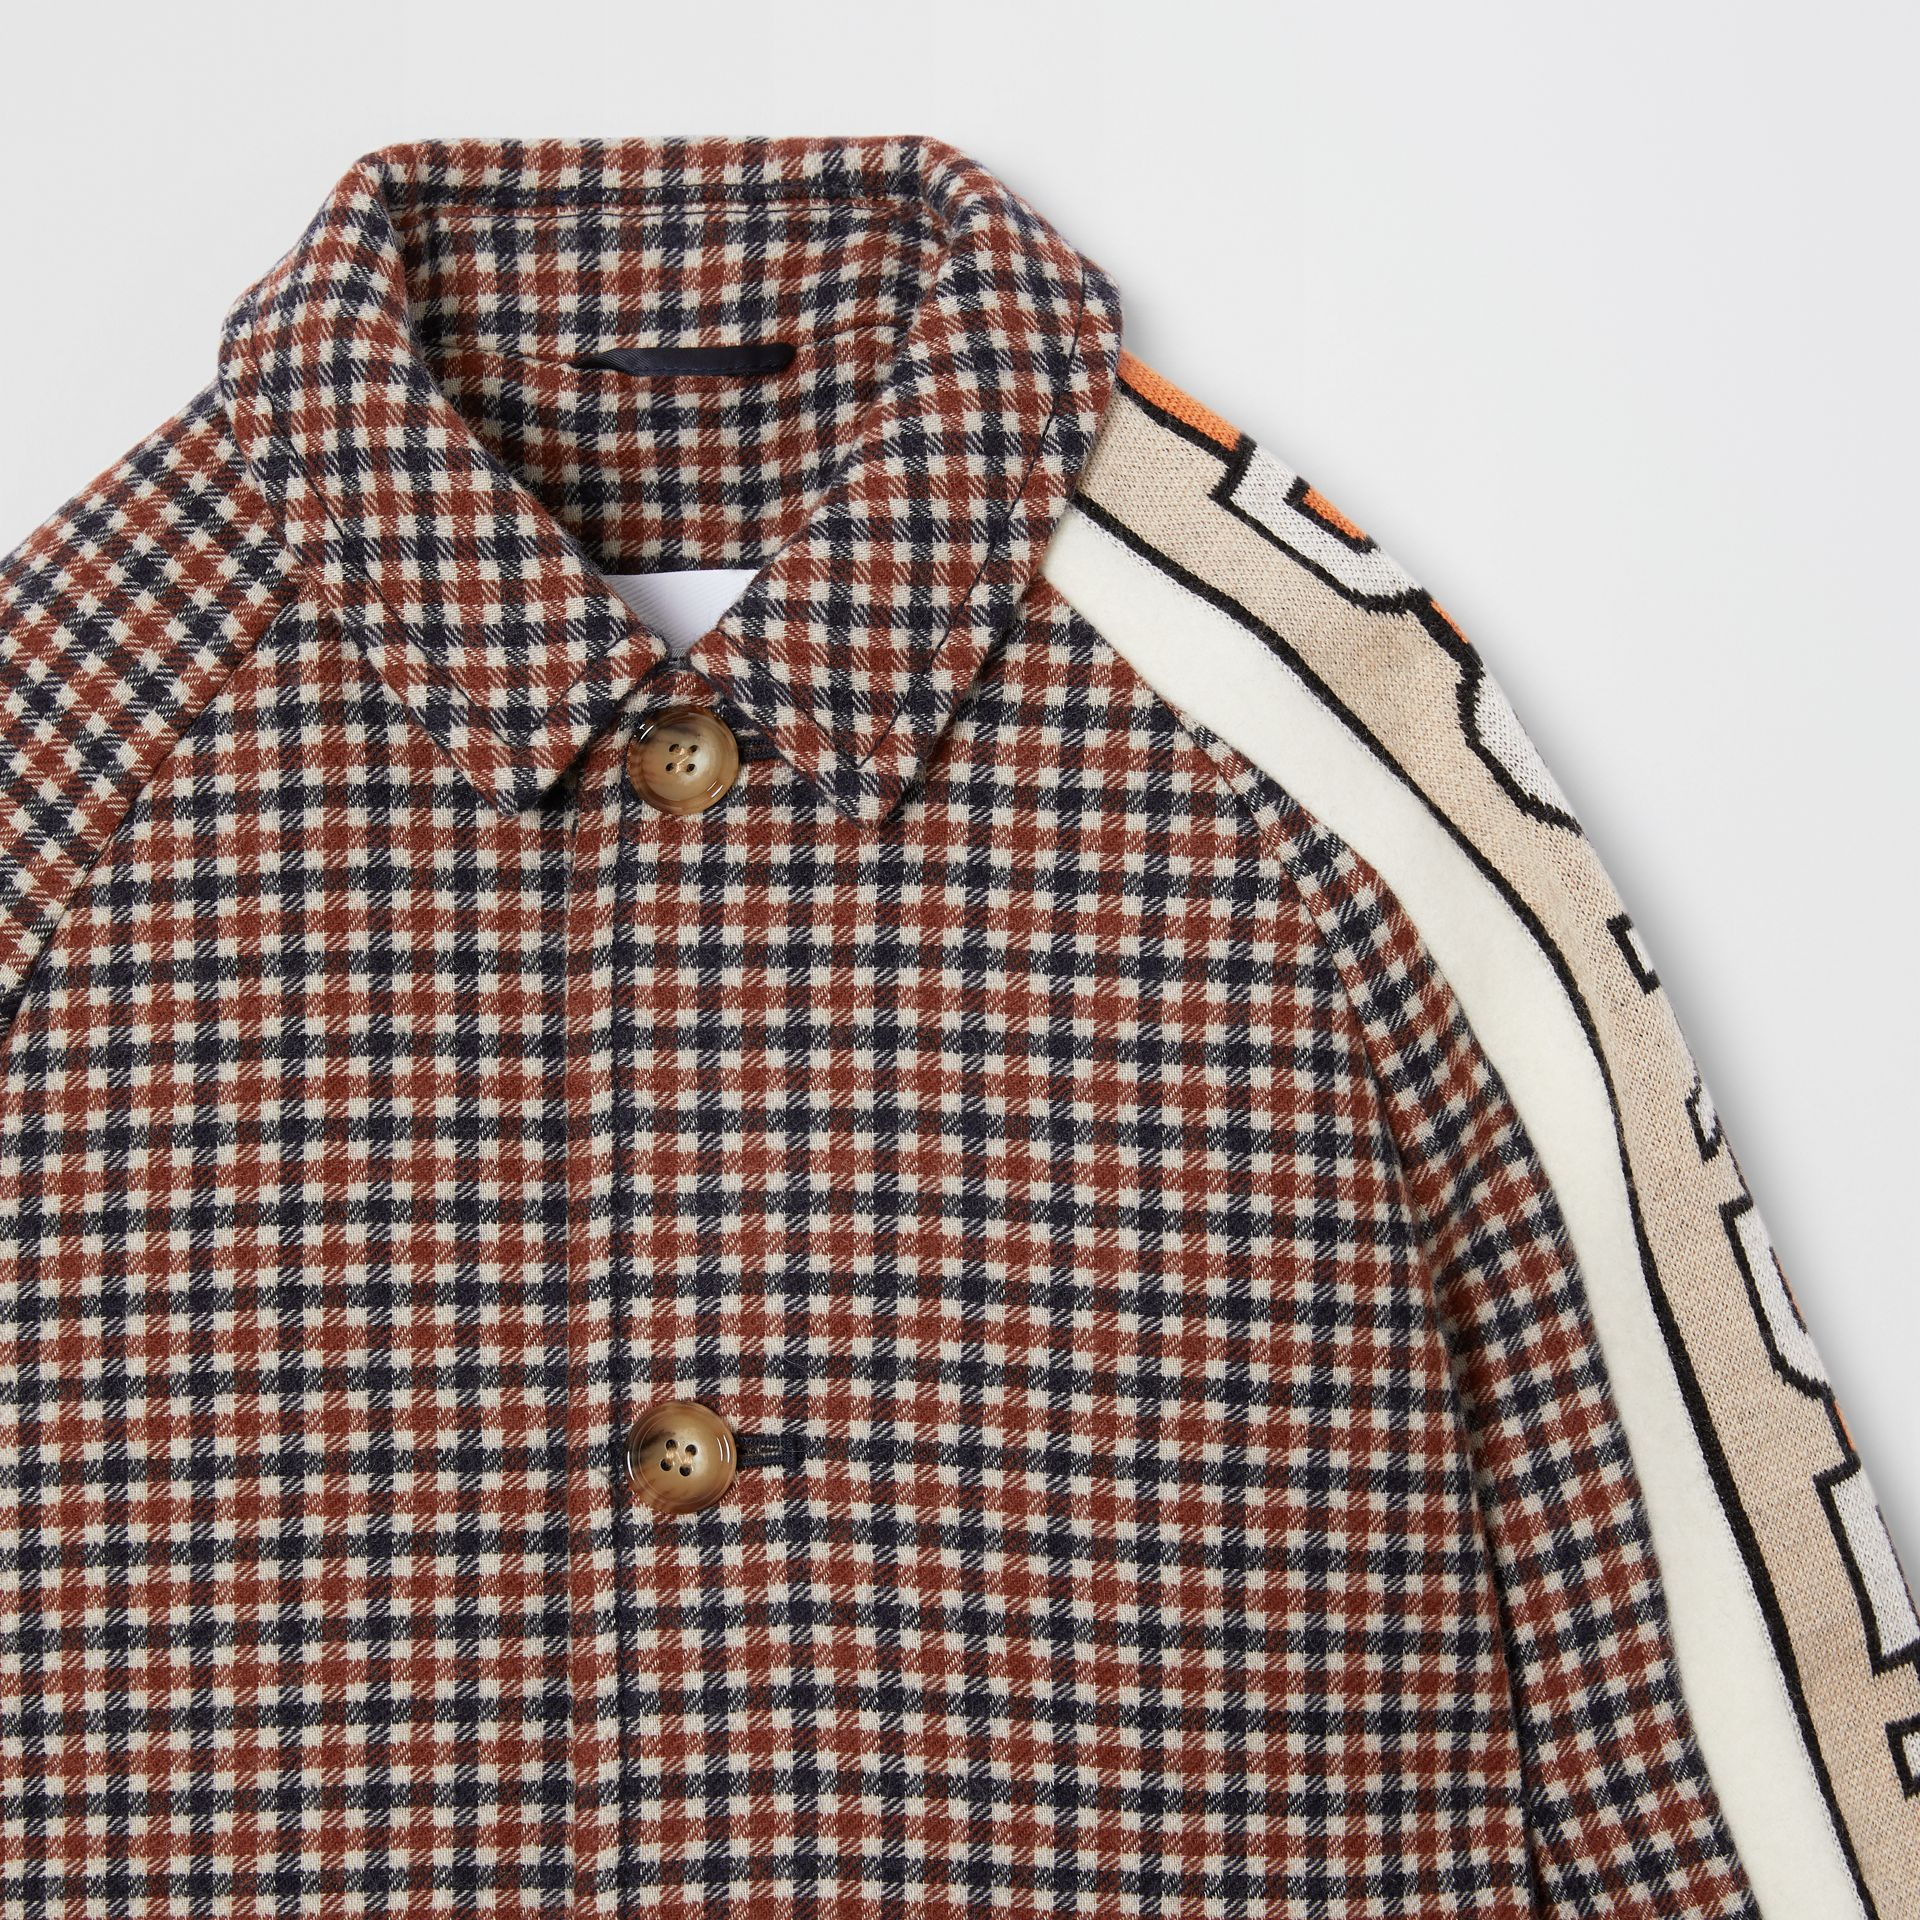 Logo Jacquard Check Wool Car Coat in Rust Brown | Burberry - gallery image 4